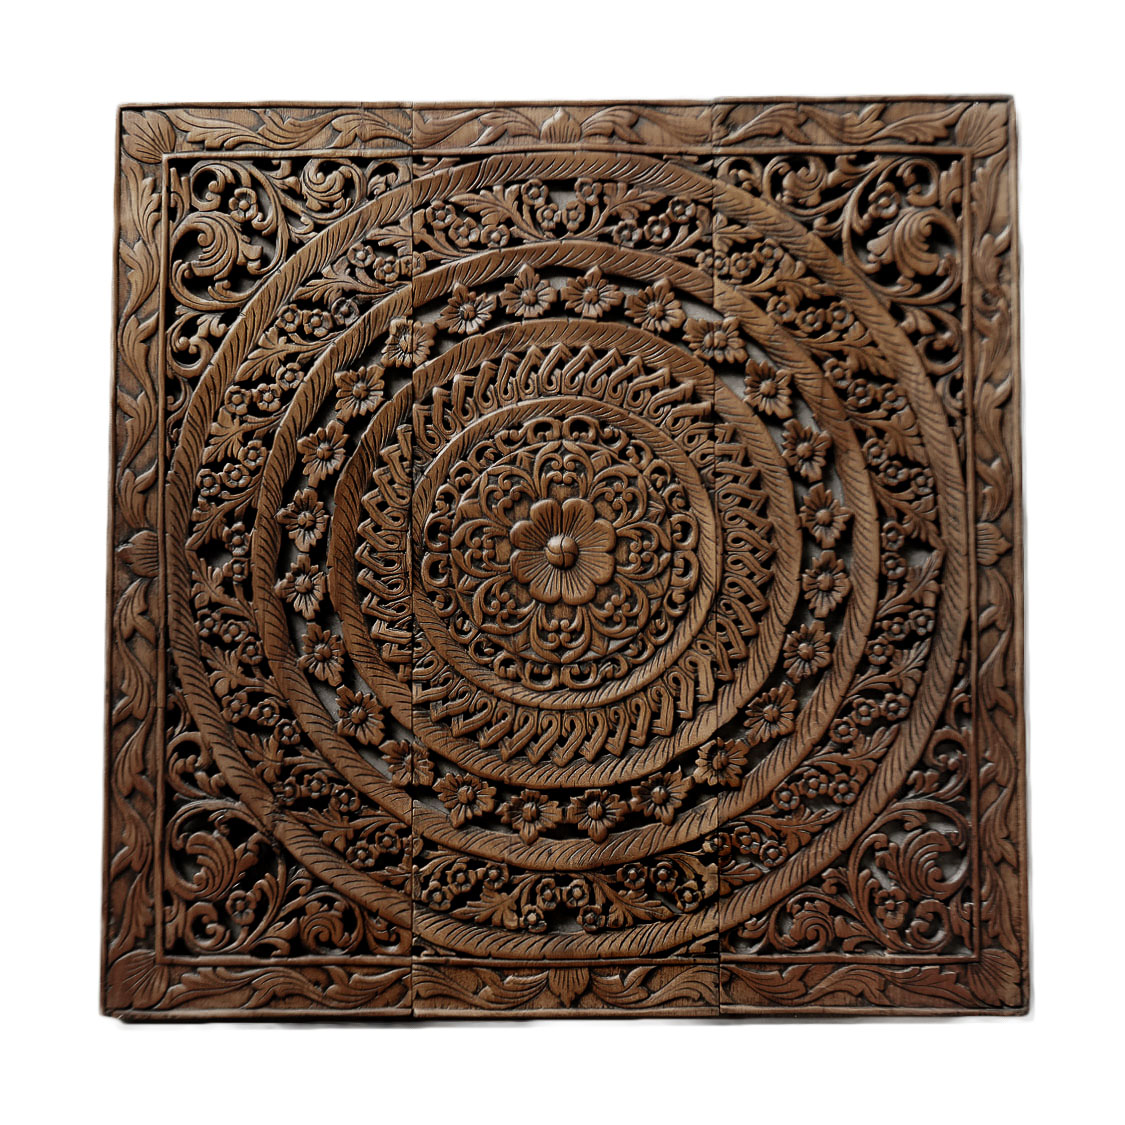 Moroccan Decent Wood Carving Wall Art Hanging Siam Sawadee